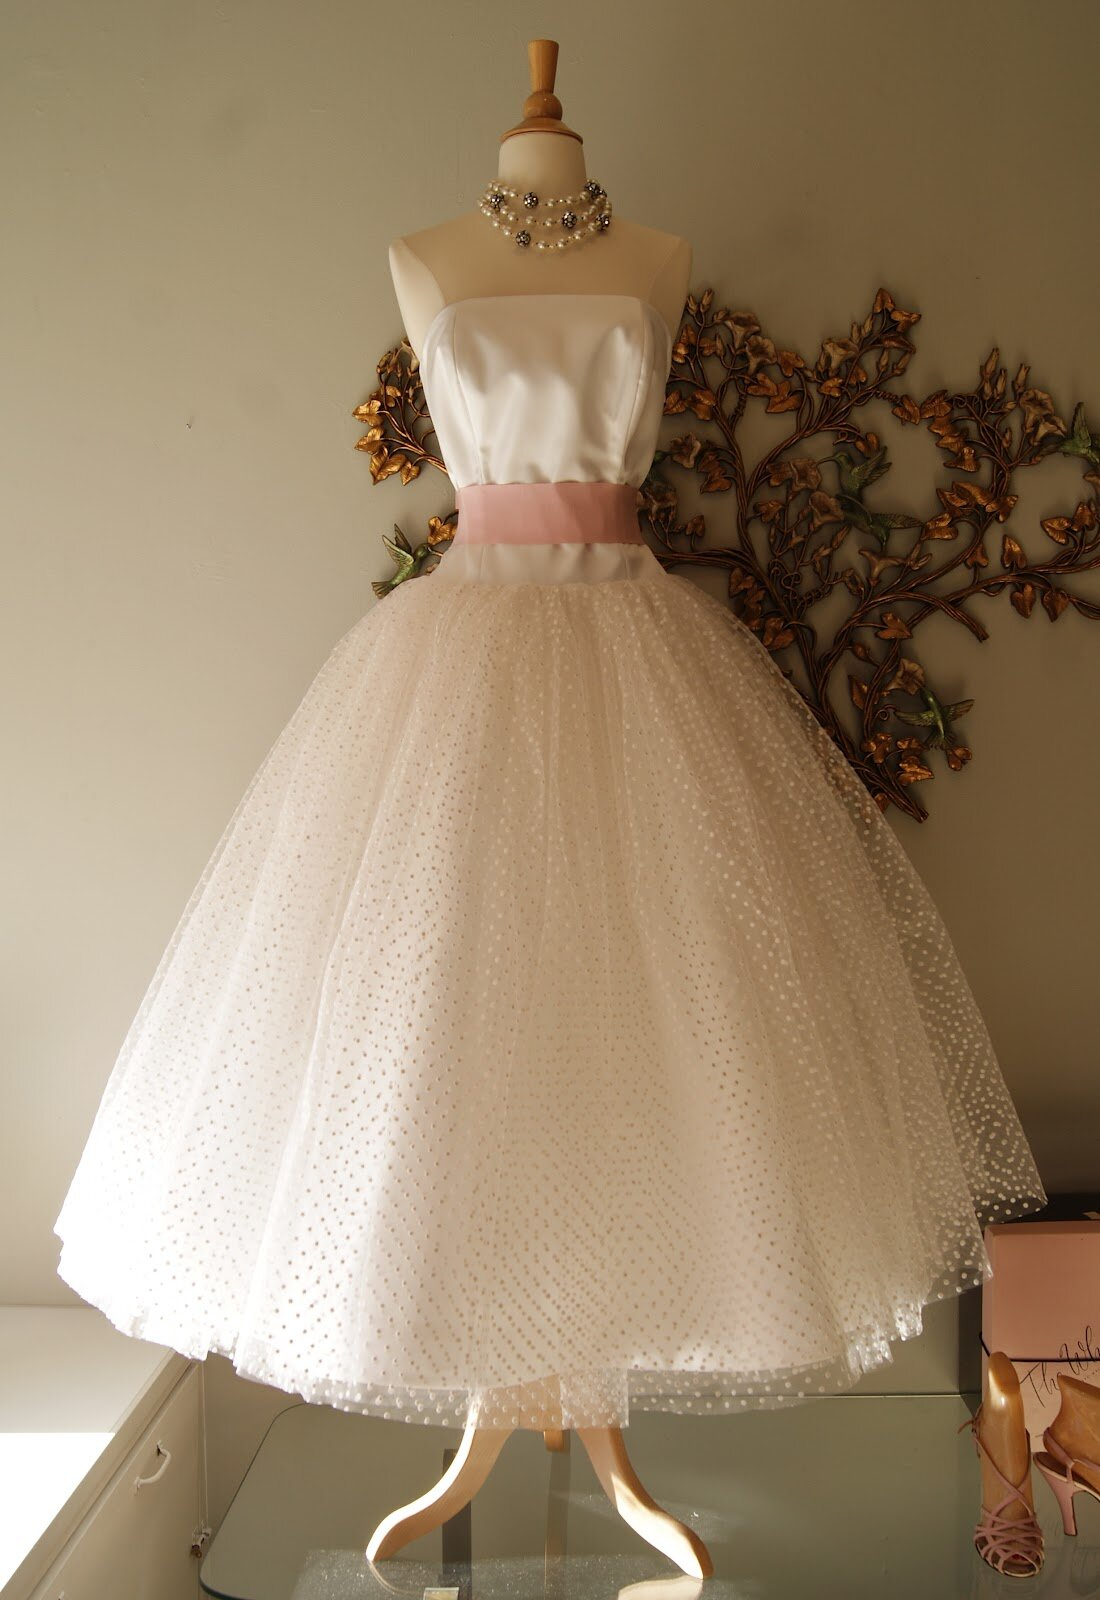 Vintage wedding dresses portland oregon photo - 3